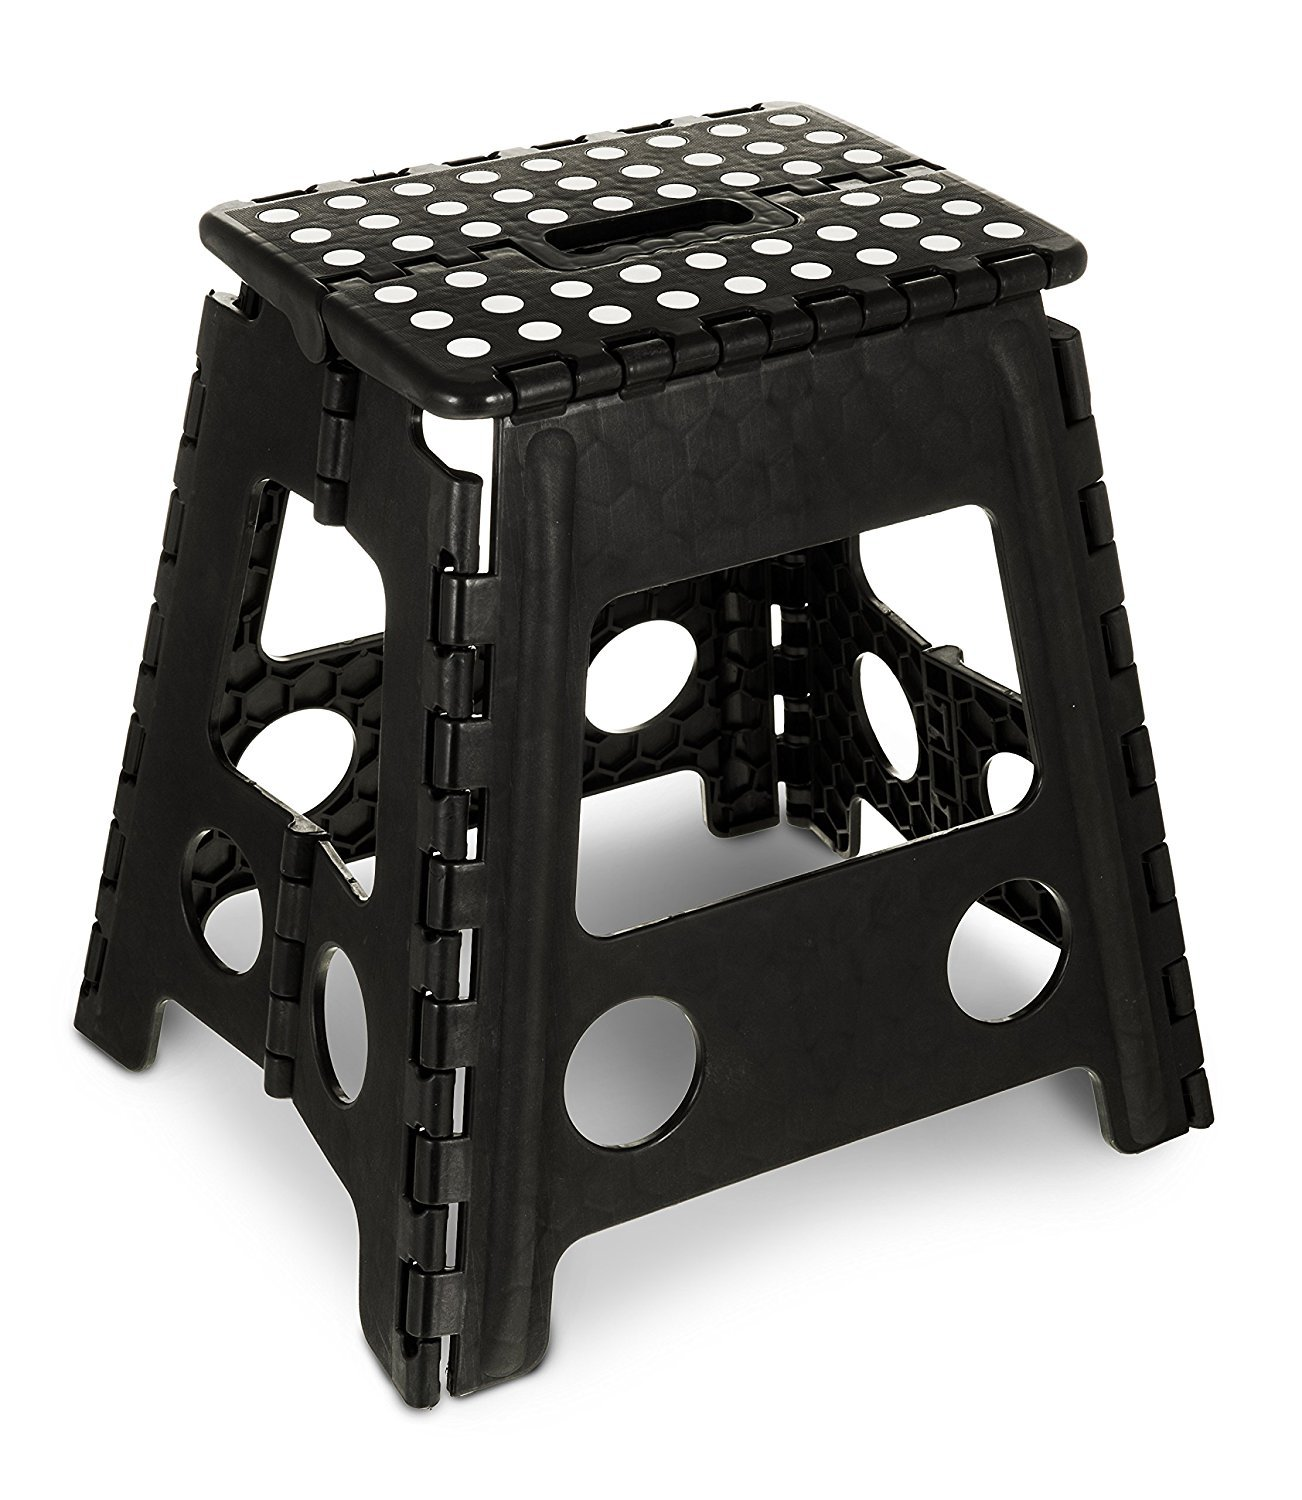 Fine Kikkerland Kkzz12 Bk Rhino Folding Step Stool Black Unemploymentrelief Wooden Chair Designs For Living Room Unemploymentrelieforg